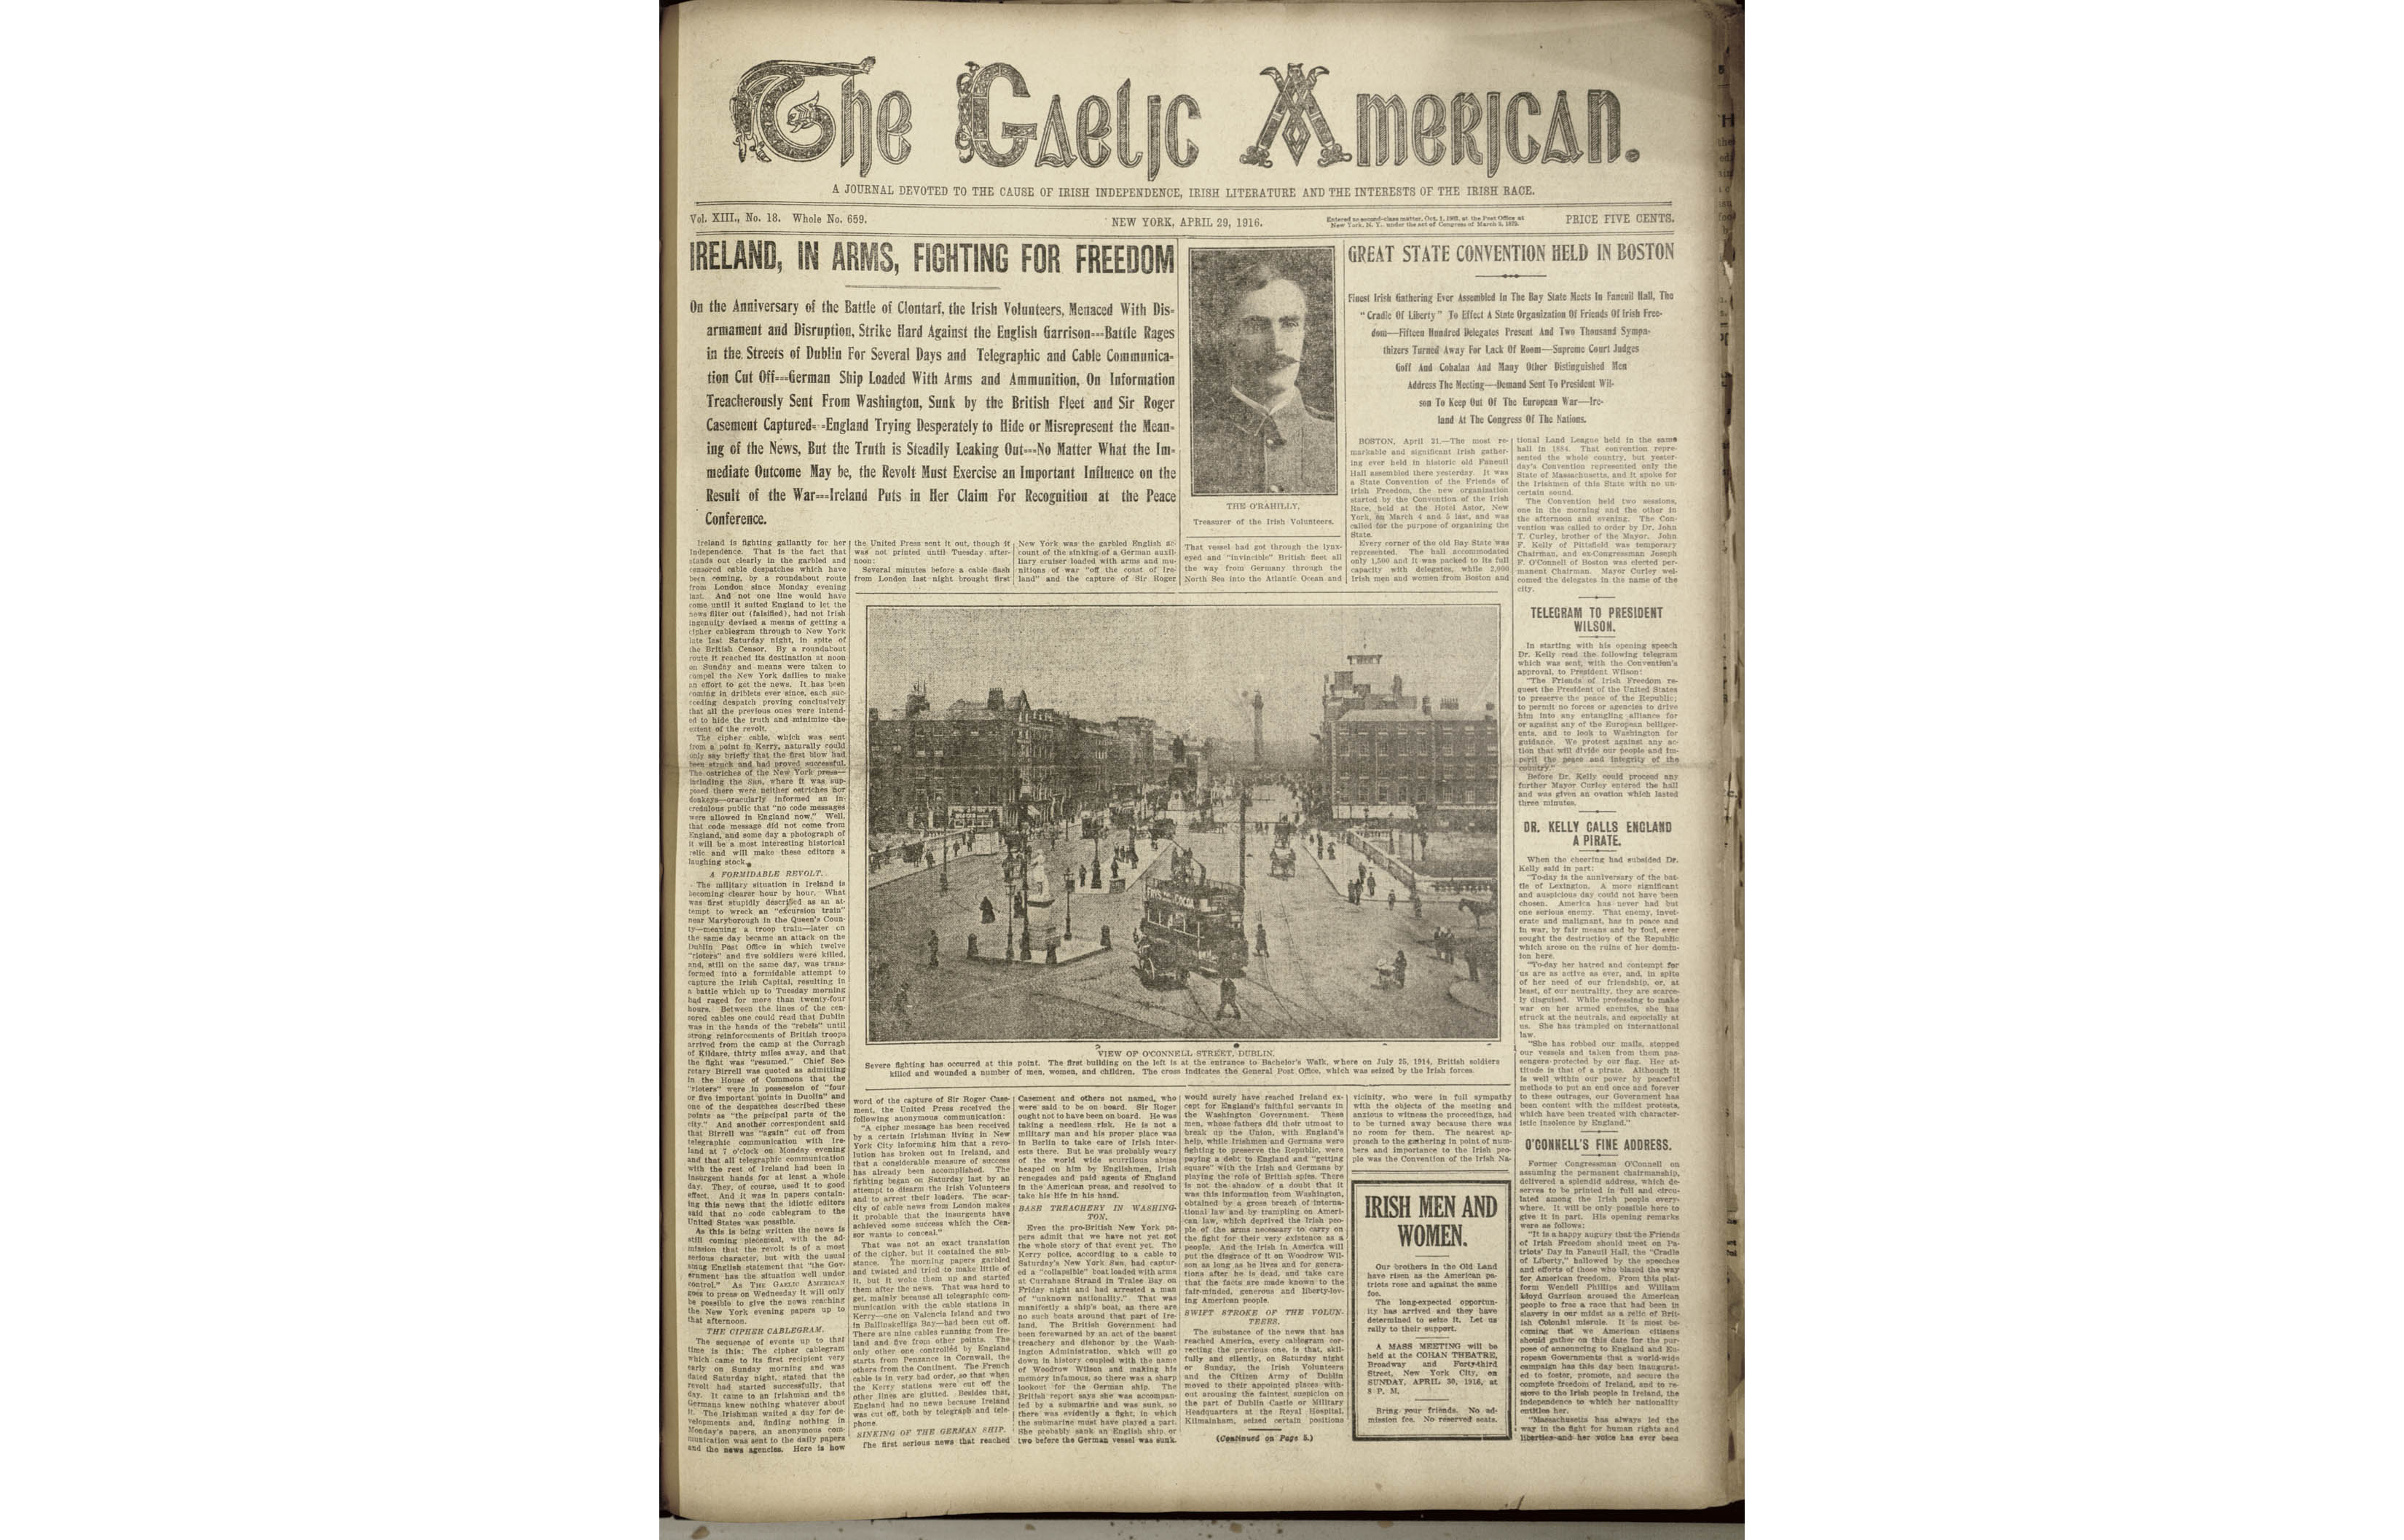 The front page of The Gaelic American which was edited and published by John Devoy.